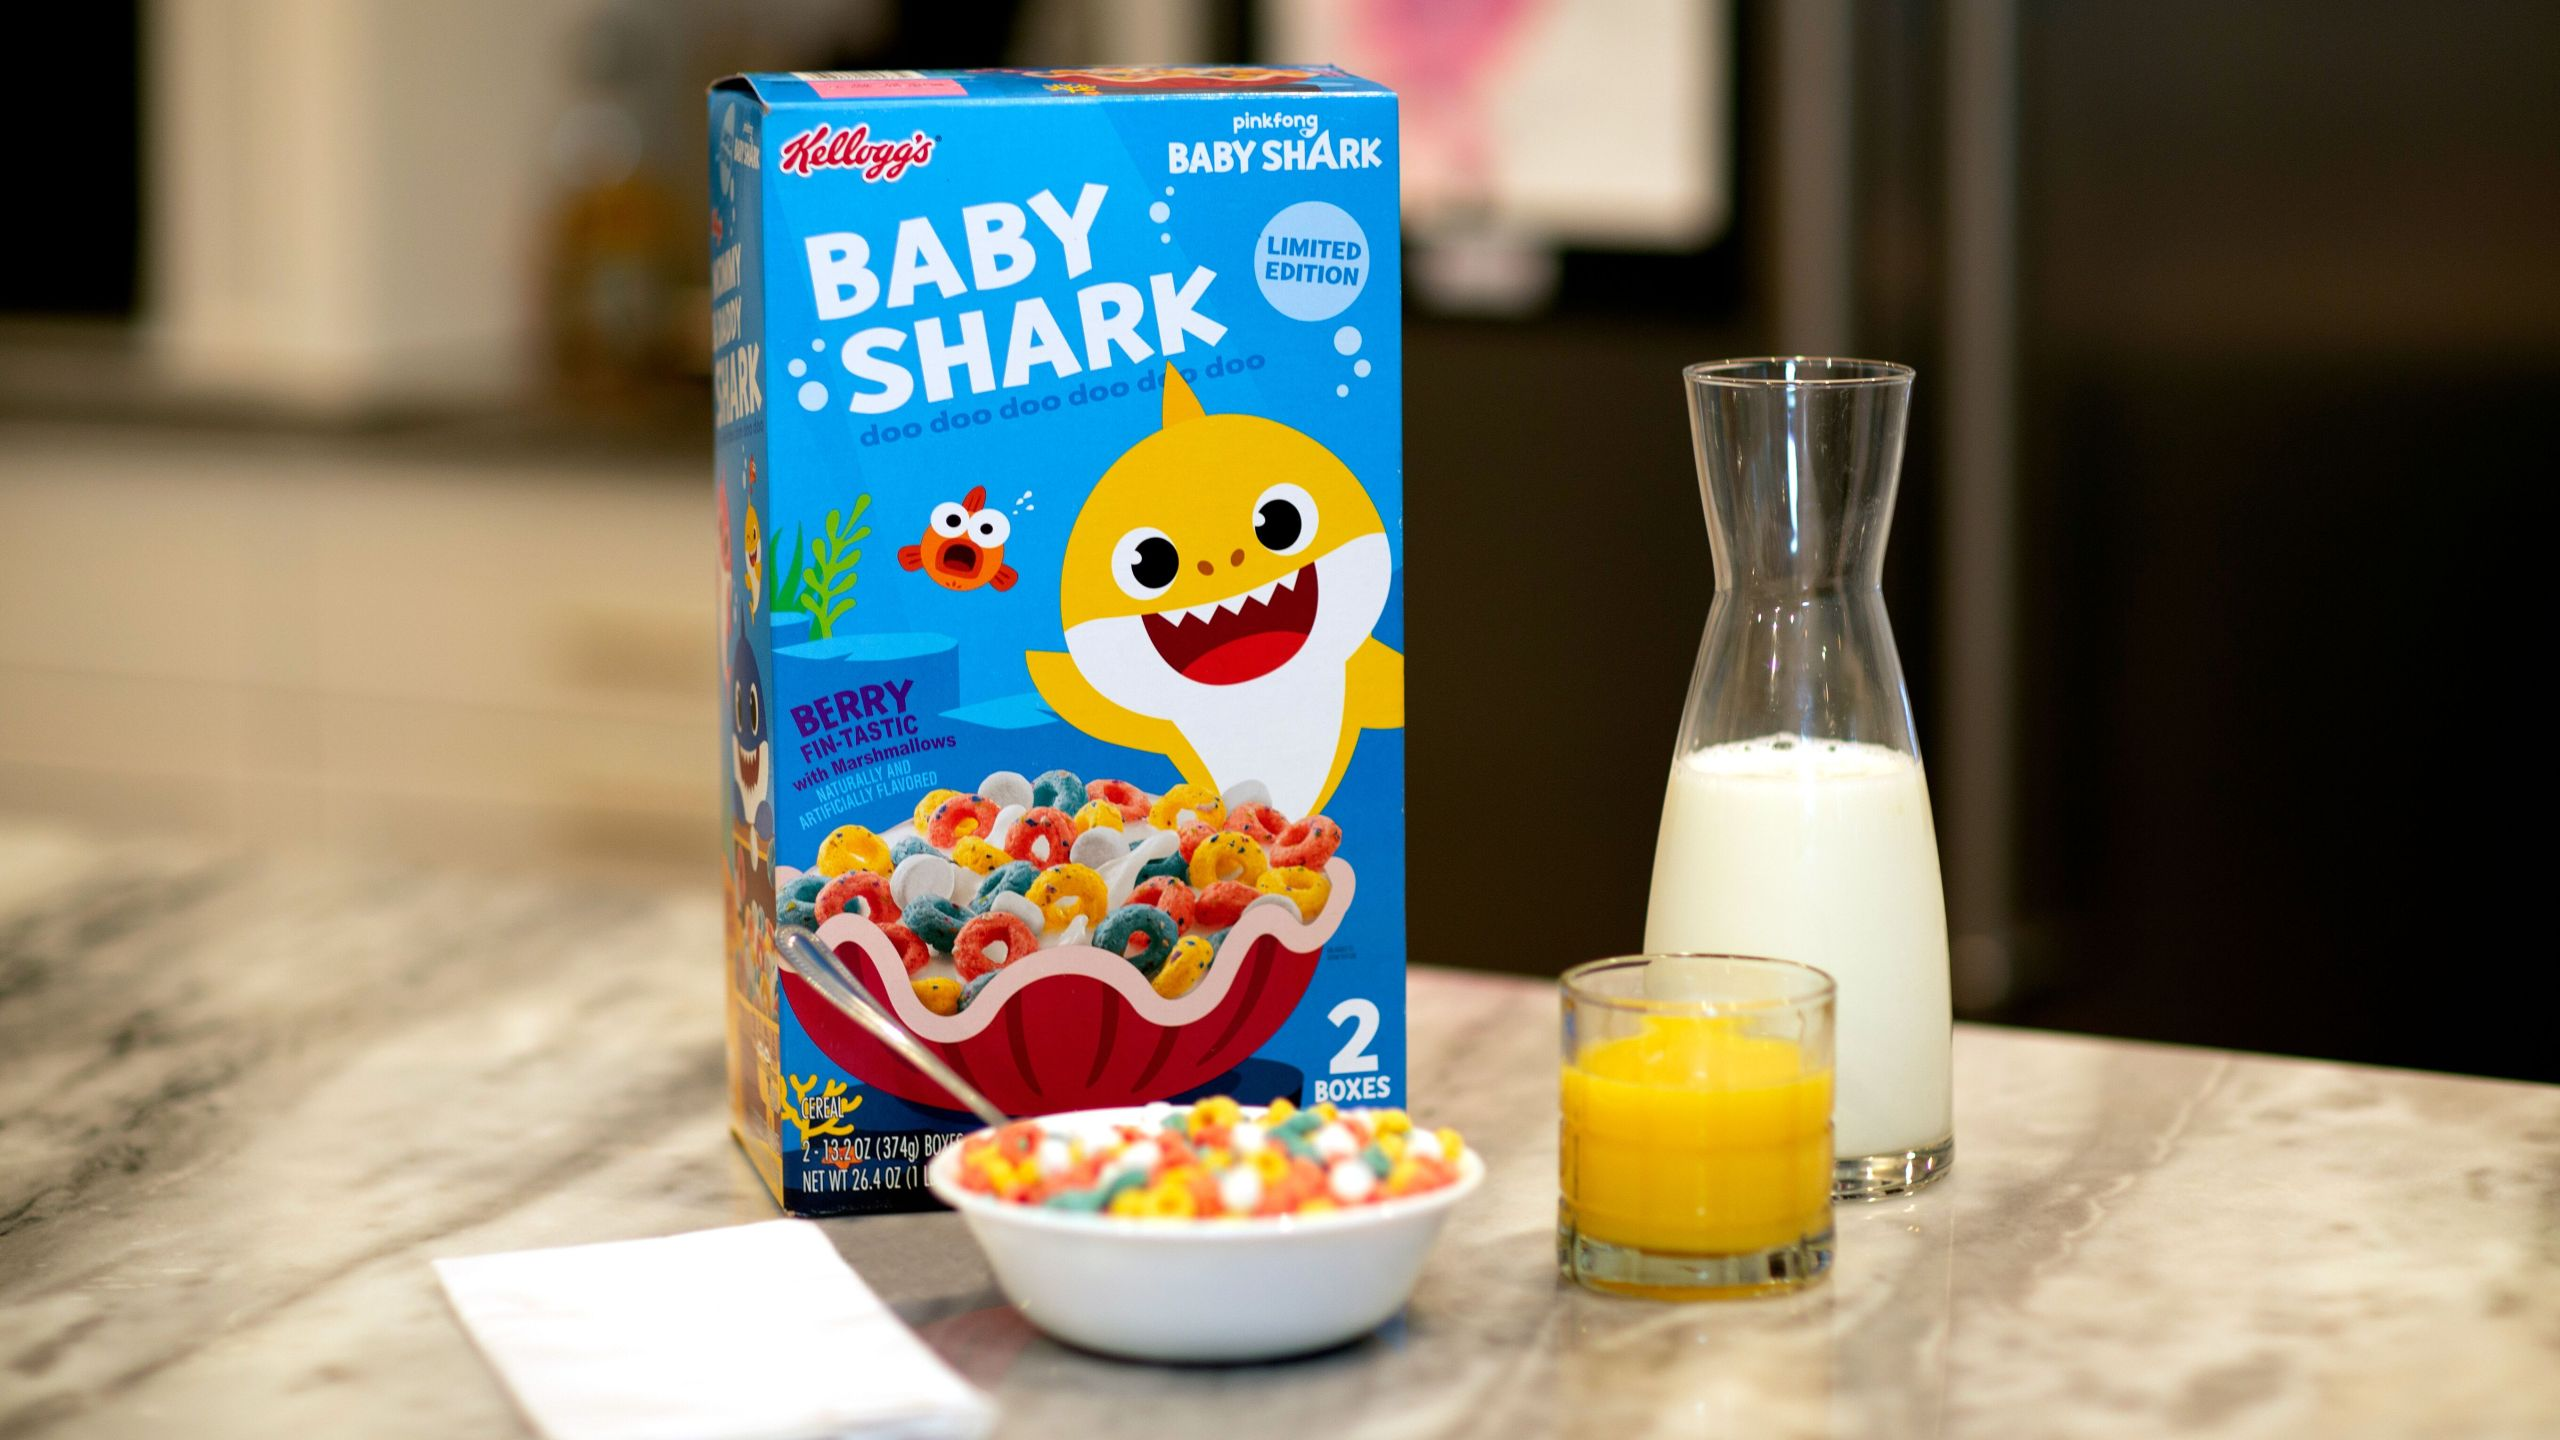 Baby Shark cereal coming to Sam's Club this weekend | KGET 17